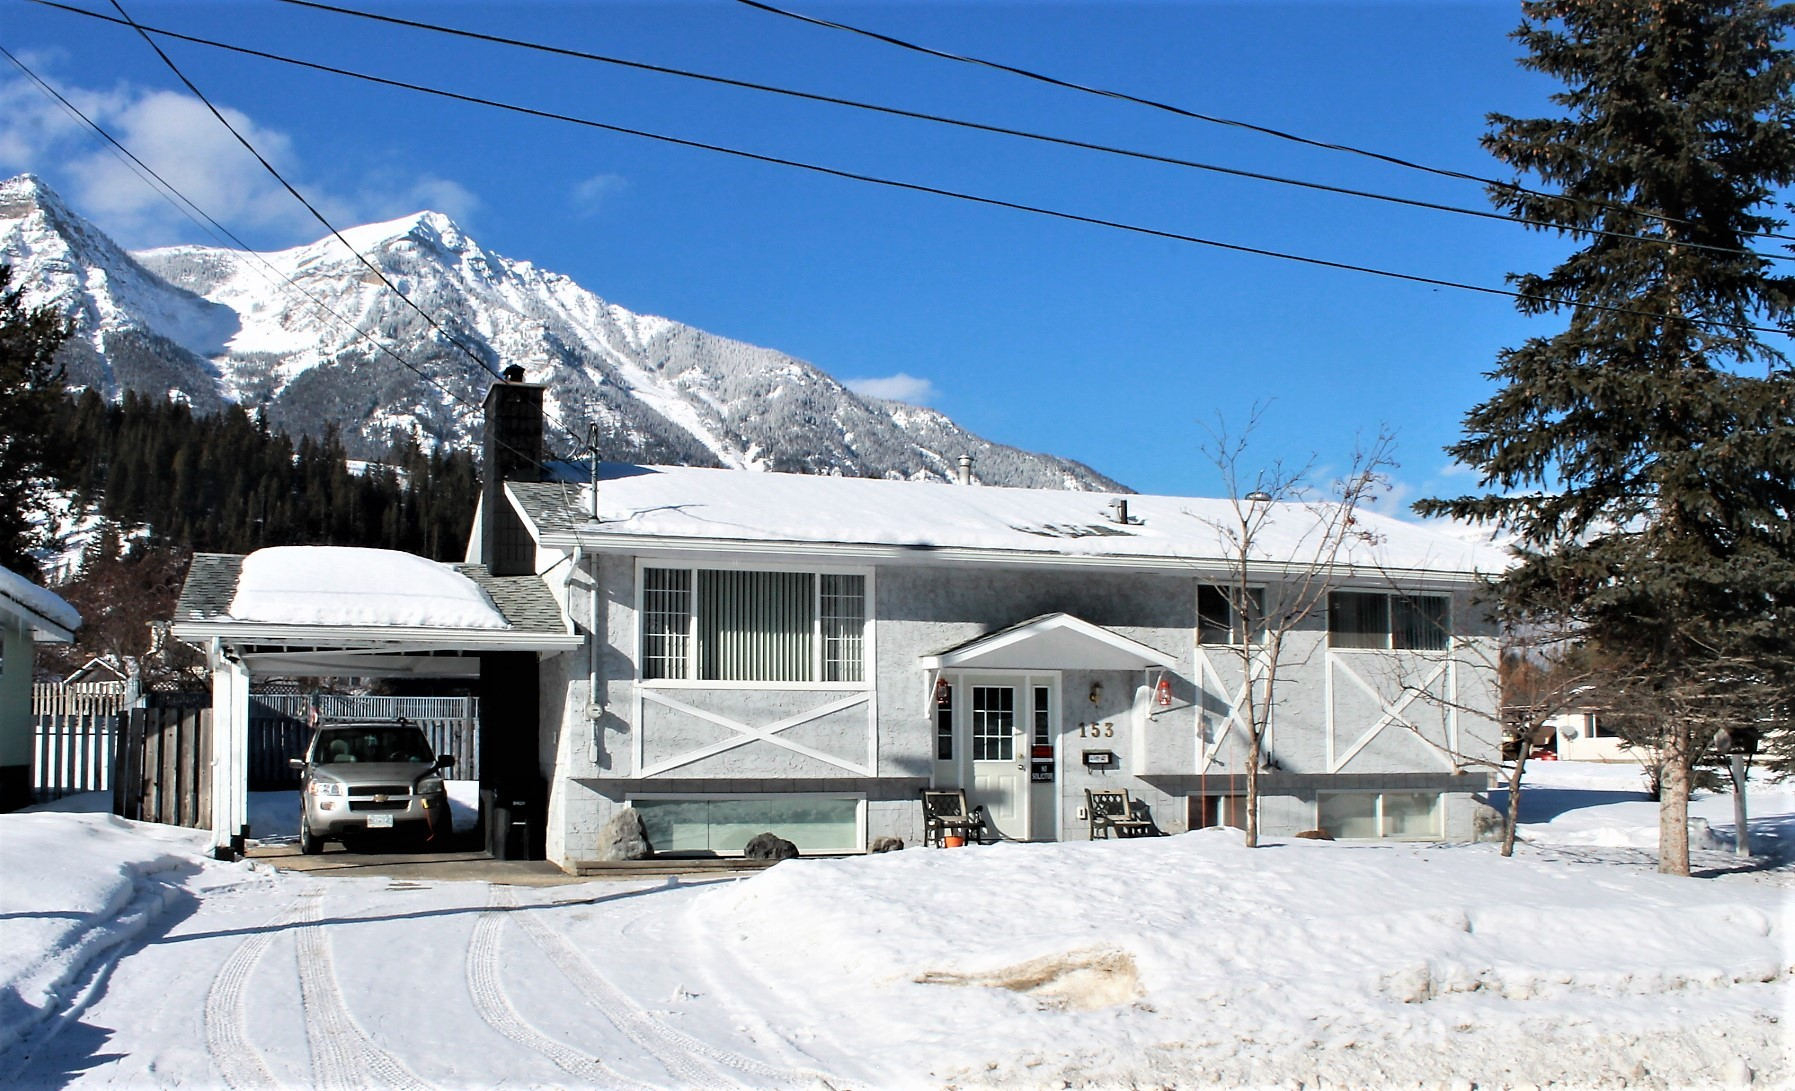 http://elkfordhomesandproperty.com/property/1355-needles-crescent/ ‎